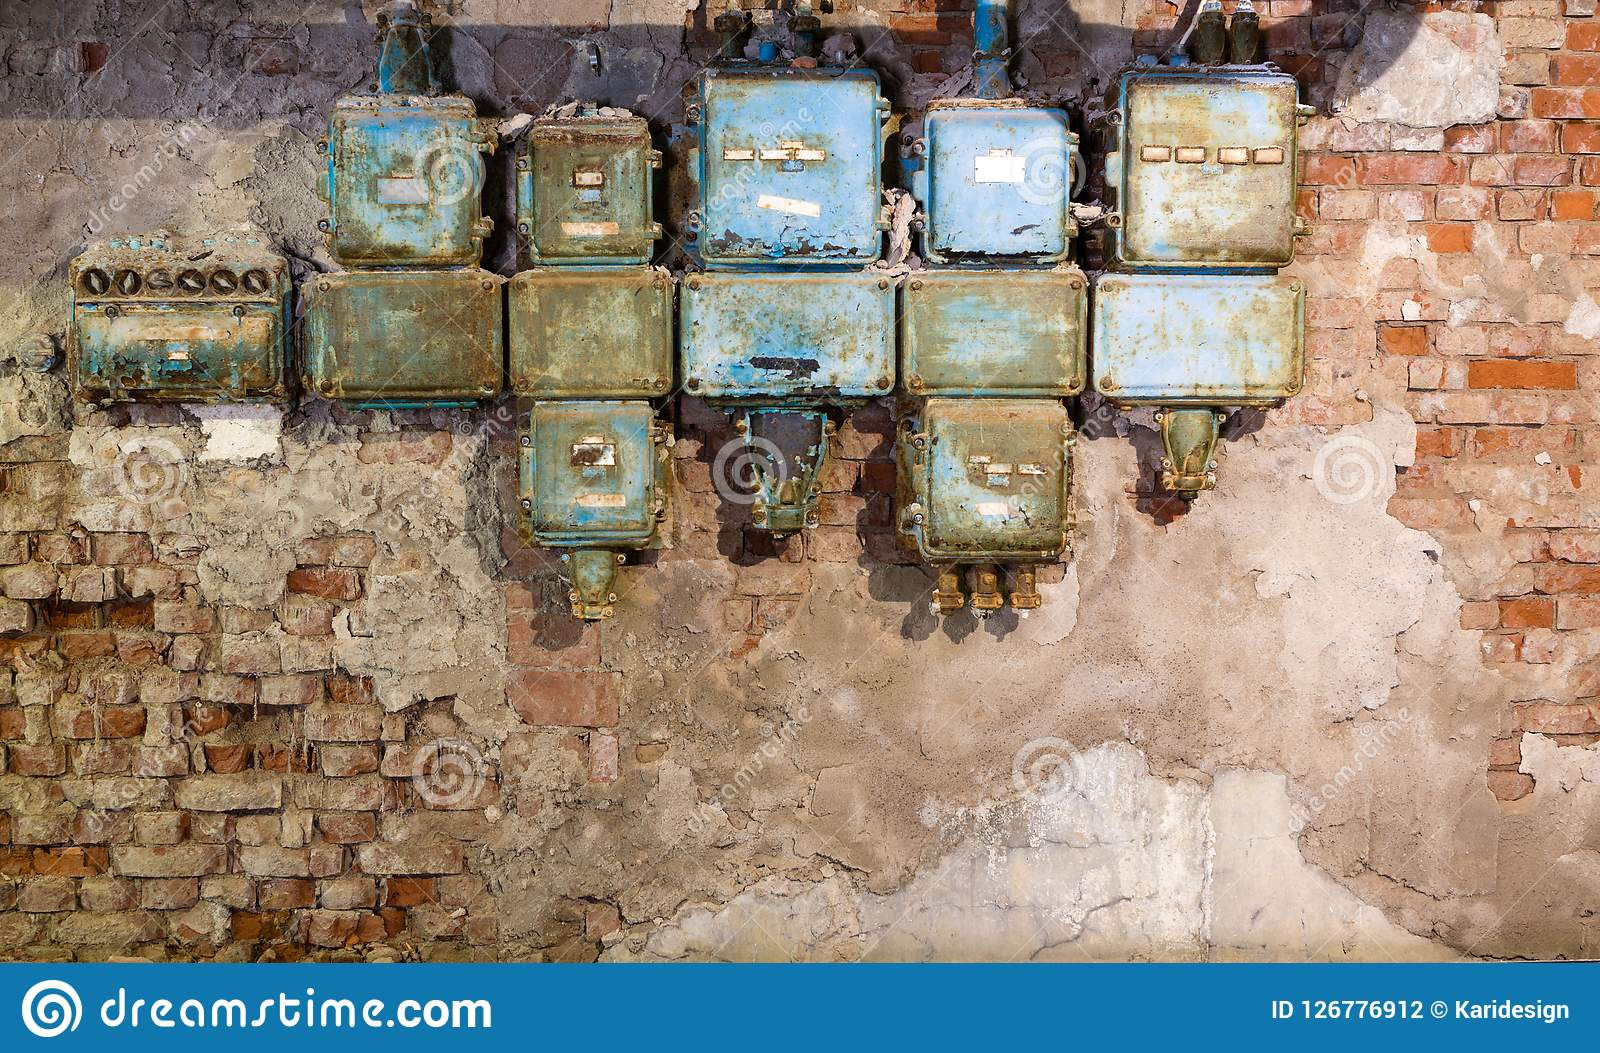 hight resolution of old fuse box in an old abandoned factory stock photo image ofold fuse box in an